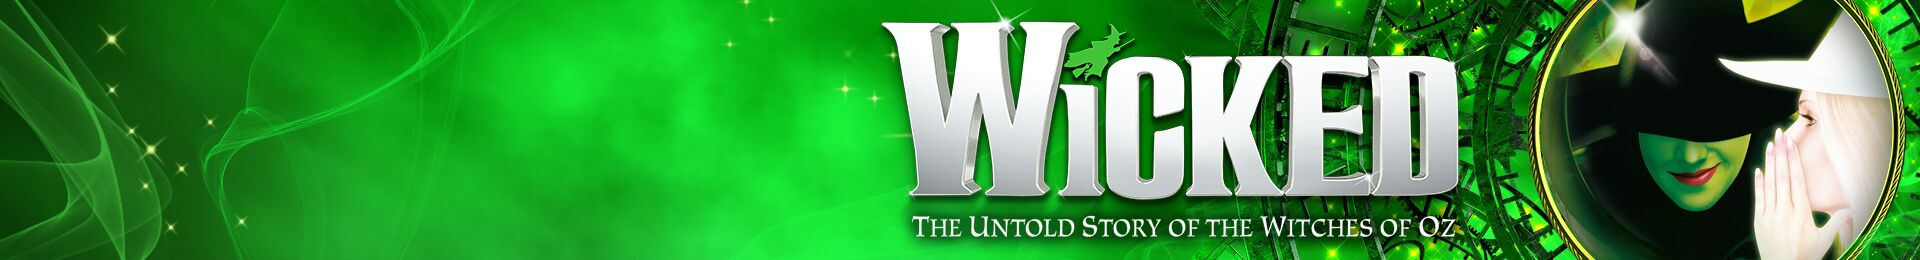 Wicked at the Apollo Victoria Theatre & Dinner at Pizza Express banner image